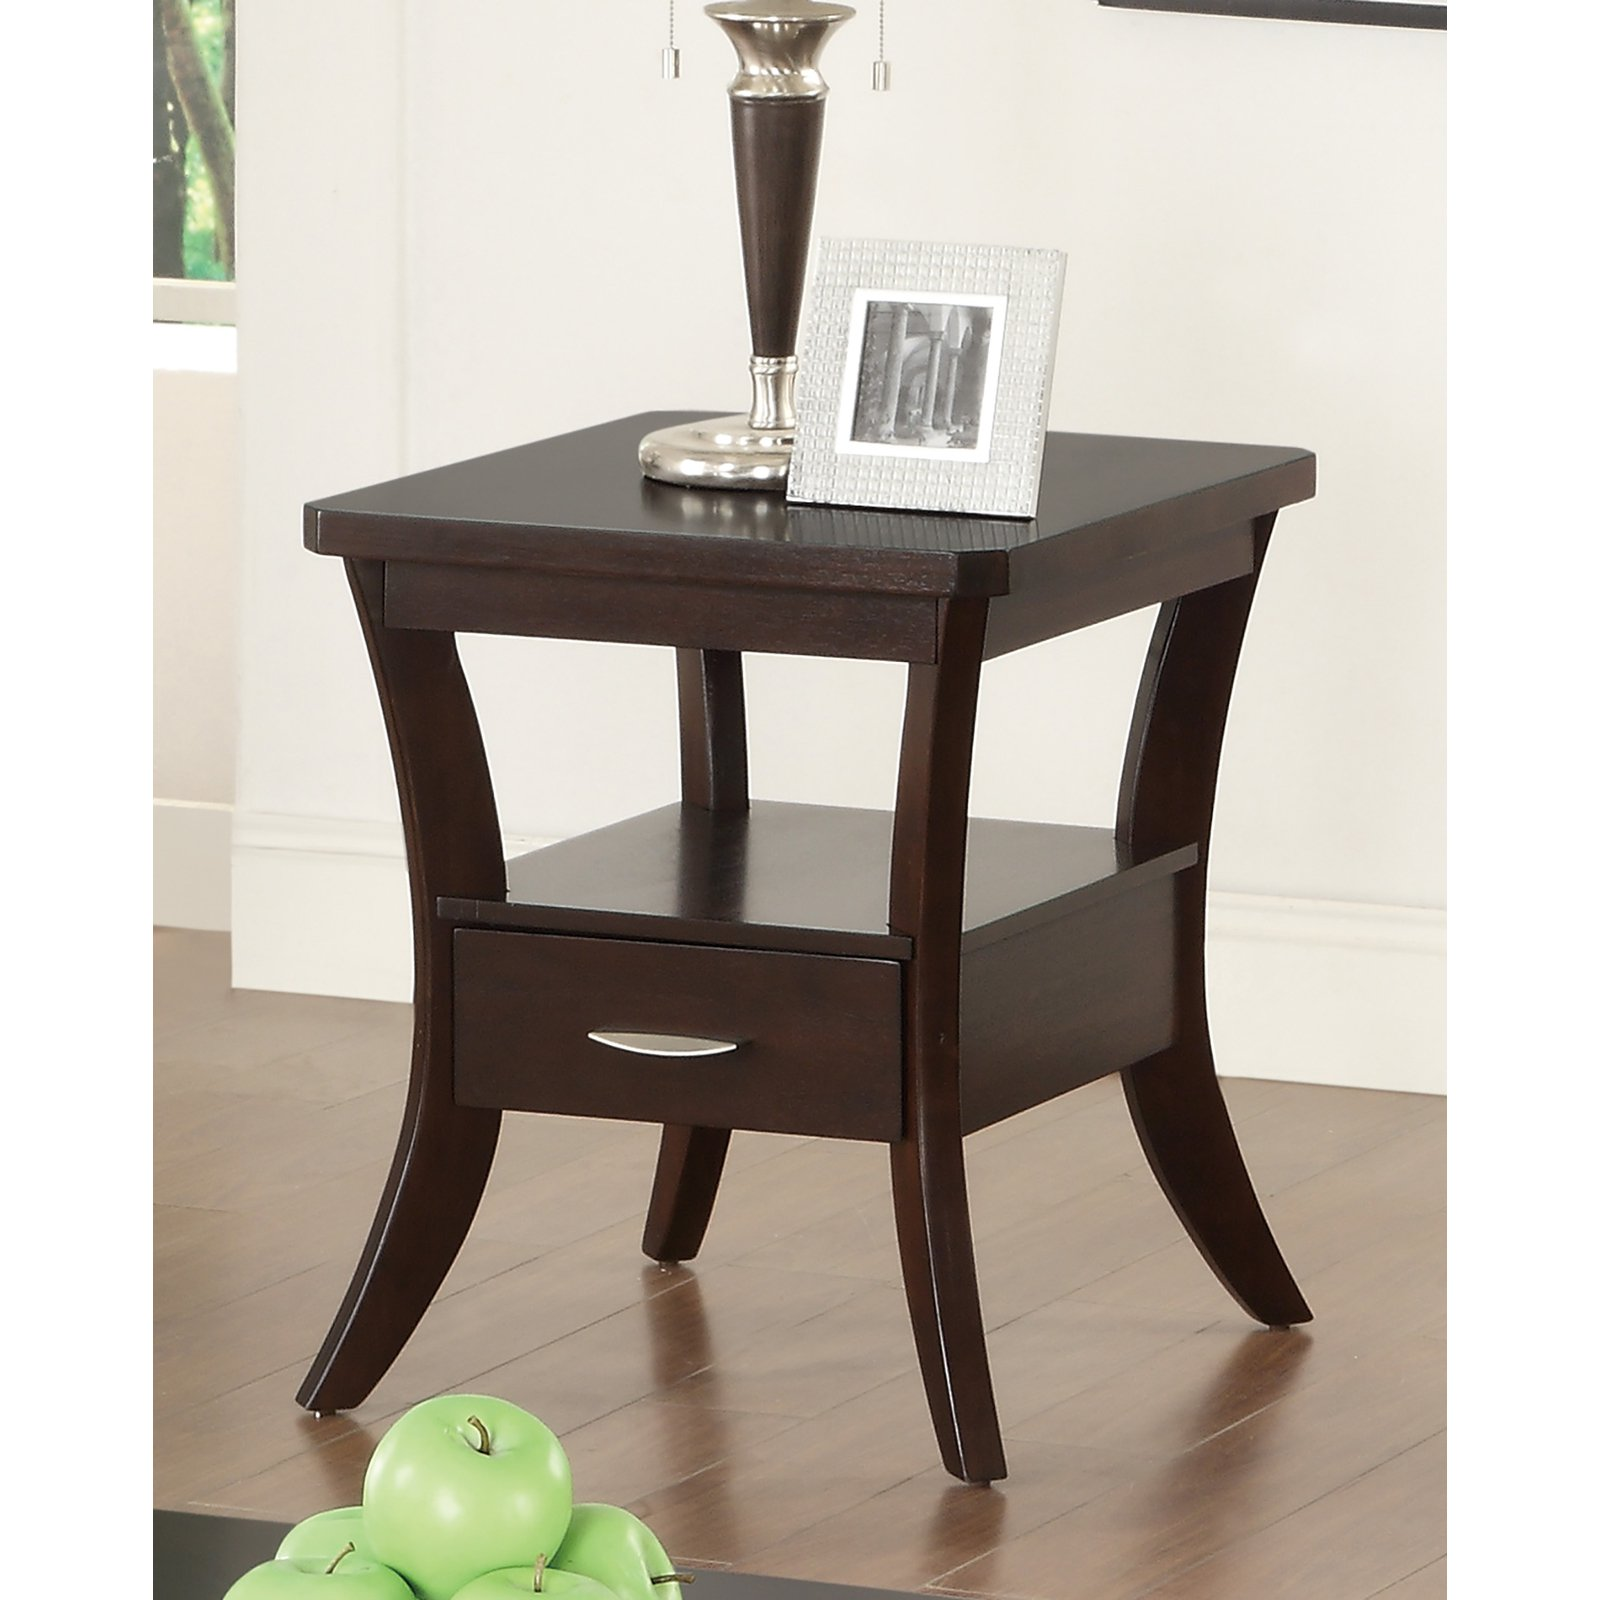 Coaster Contemporary Espresso End Table with Flared Legs